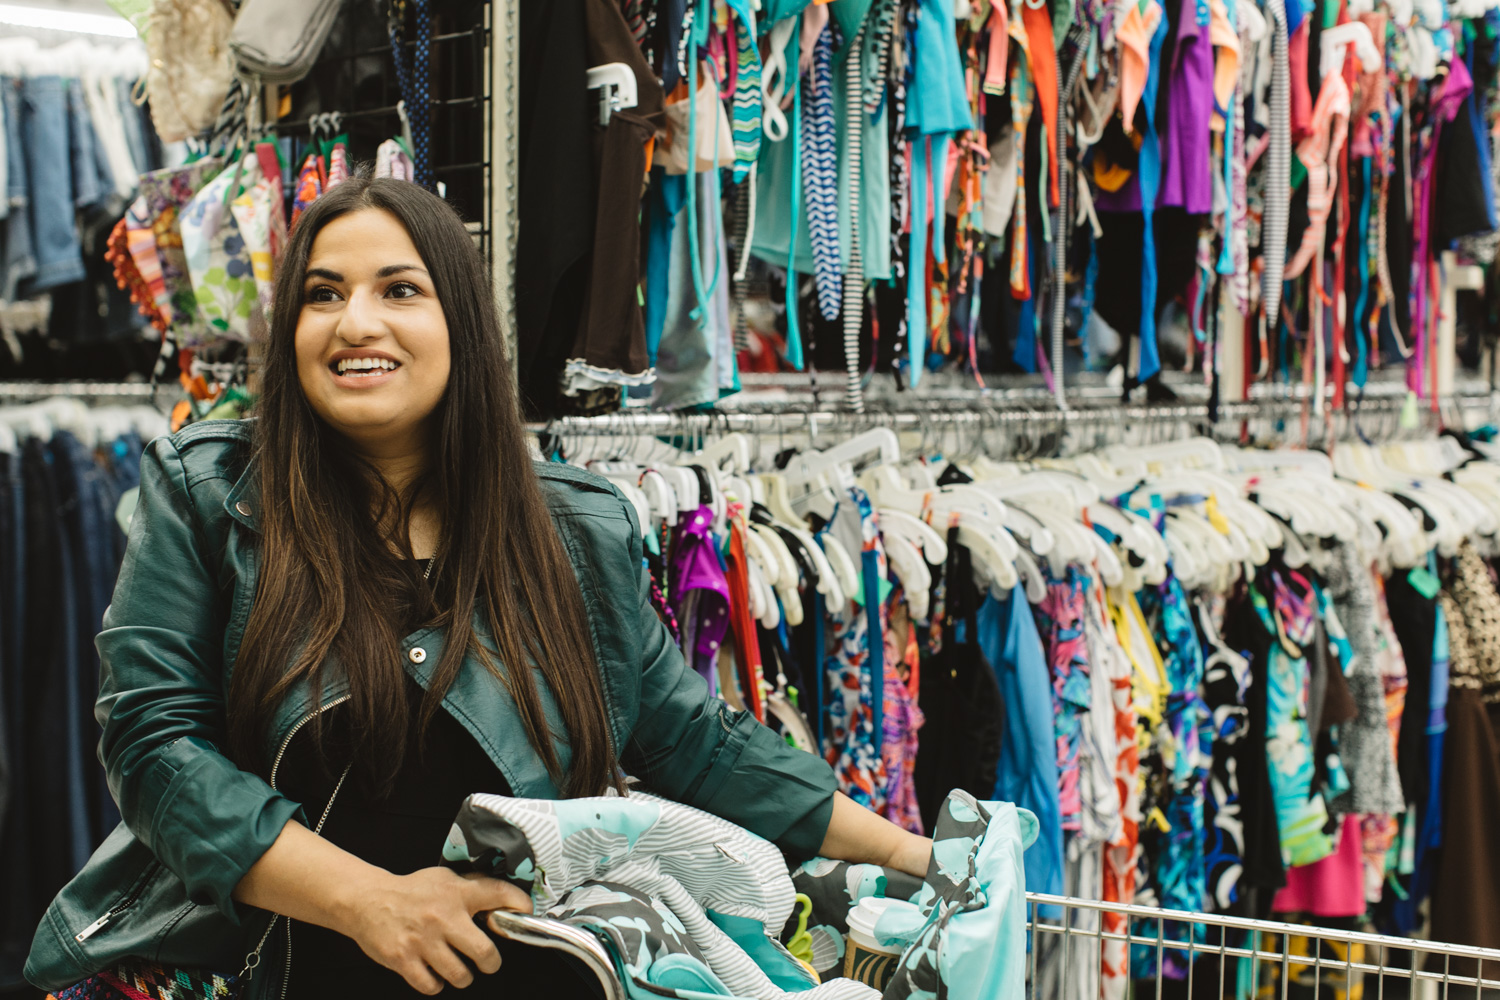 Dina Younis, blogger and podcaster, at the thrift store